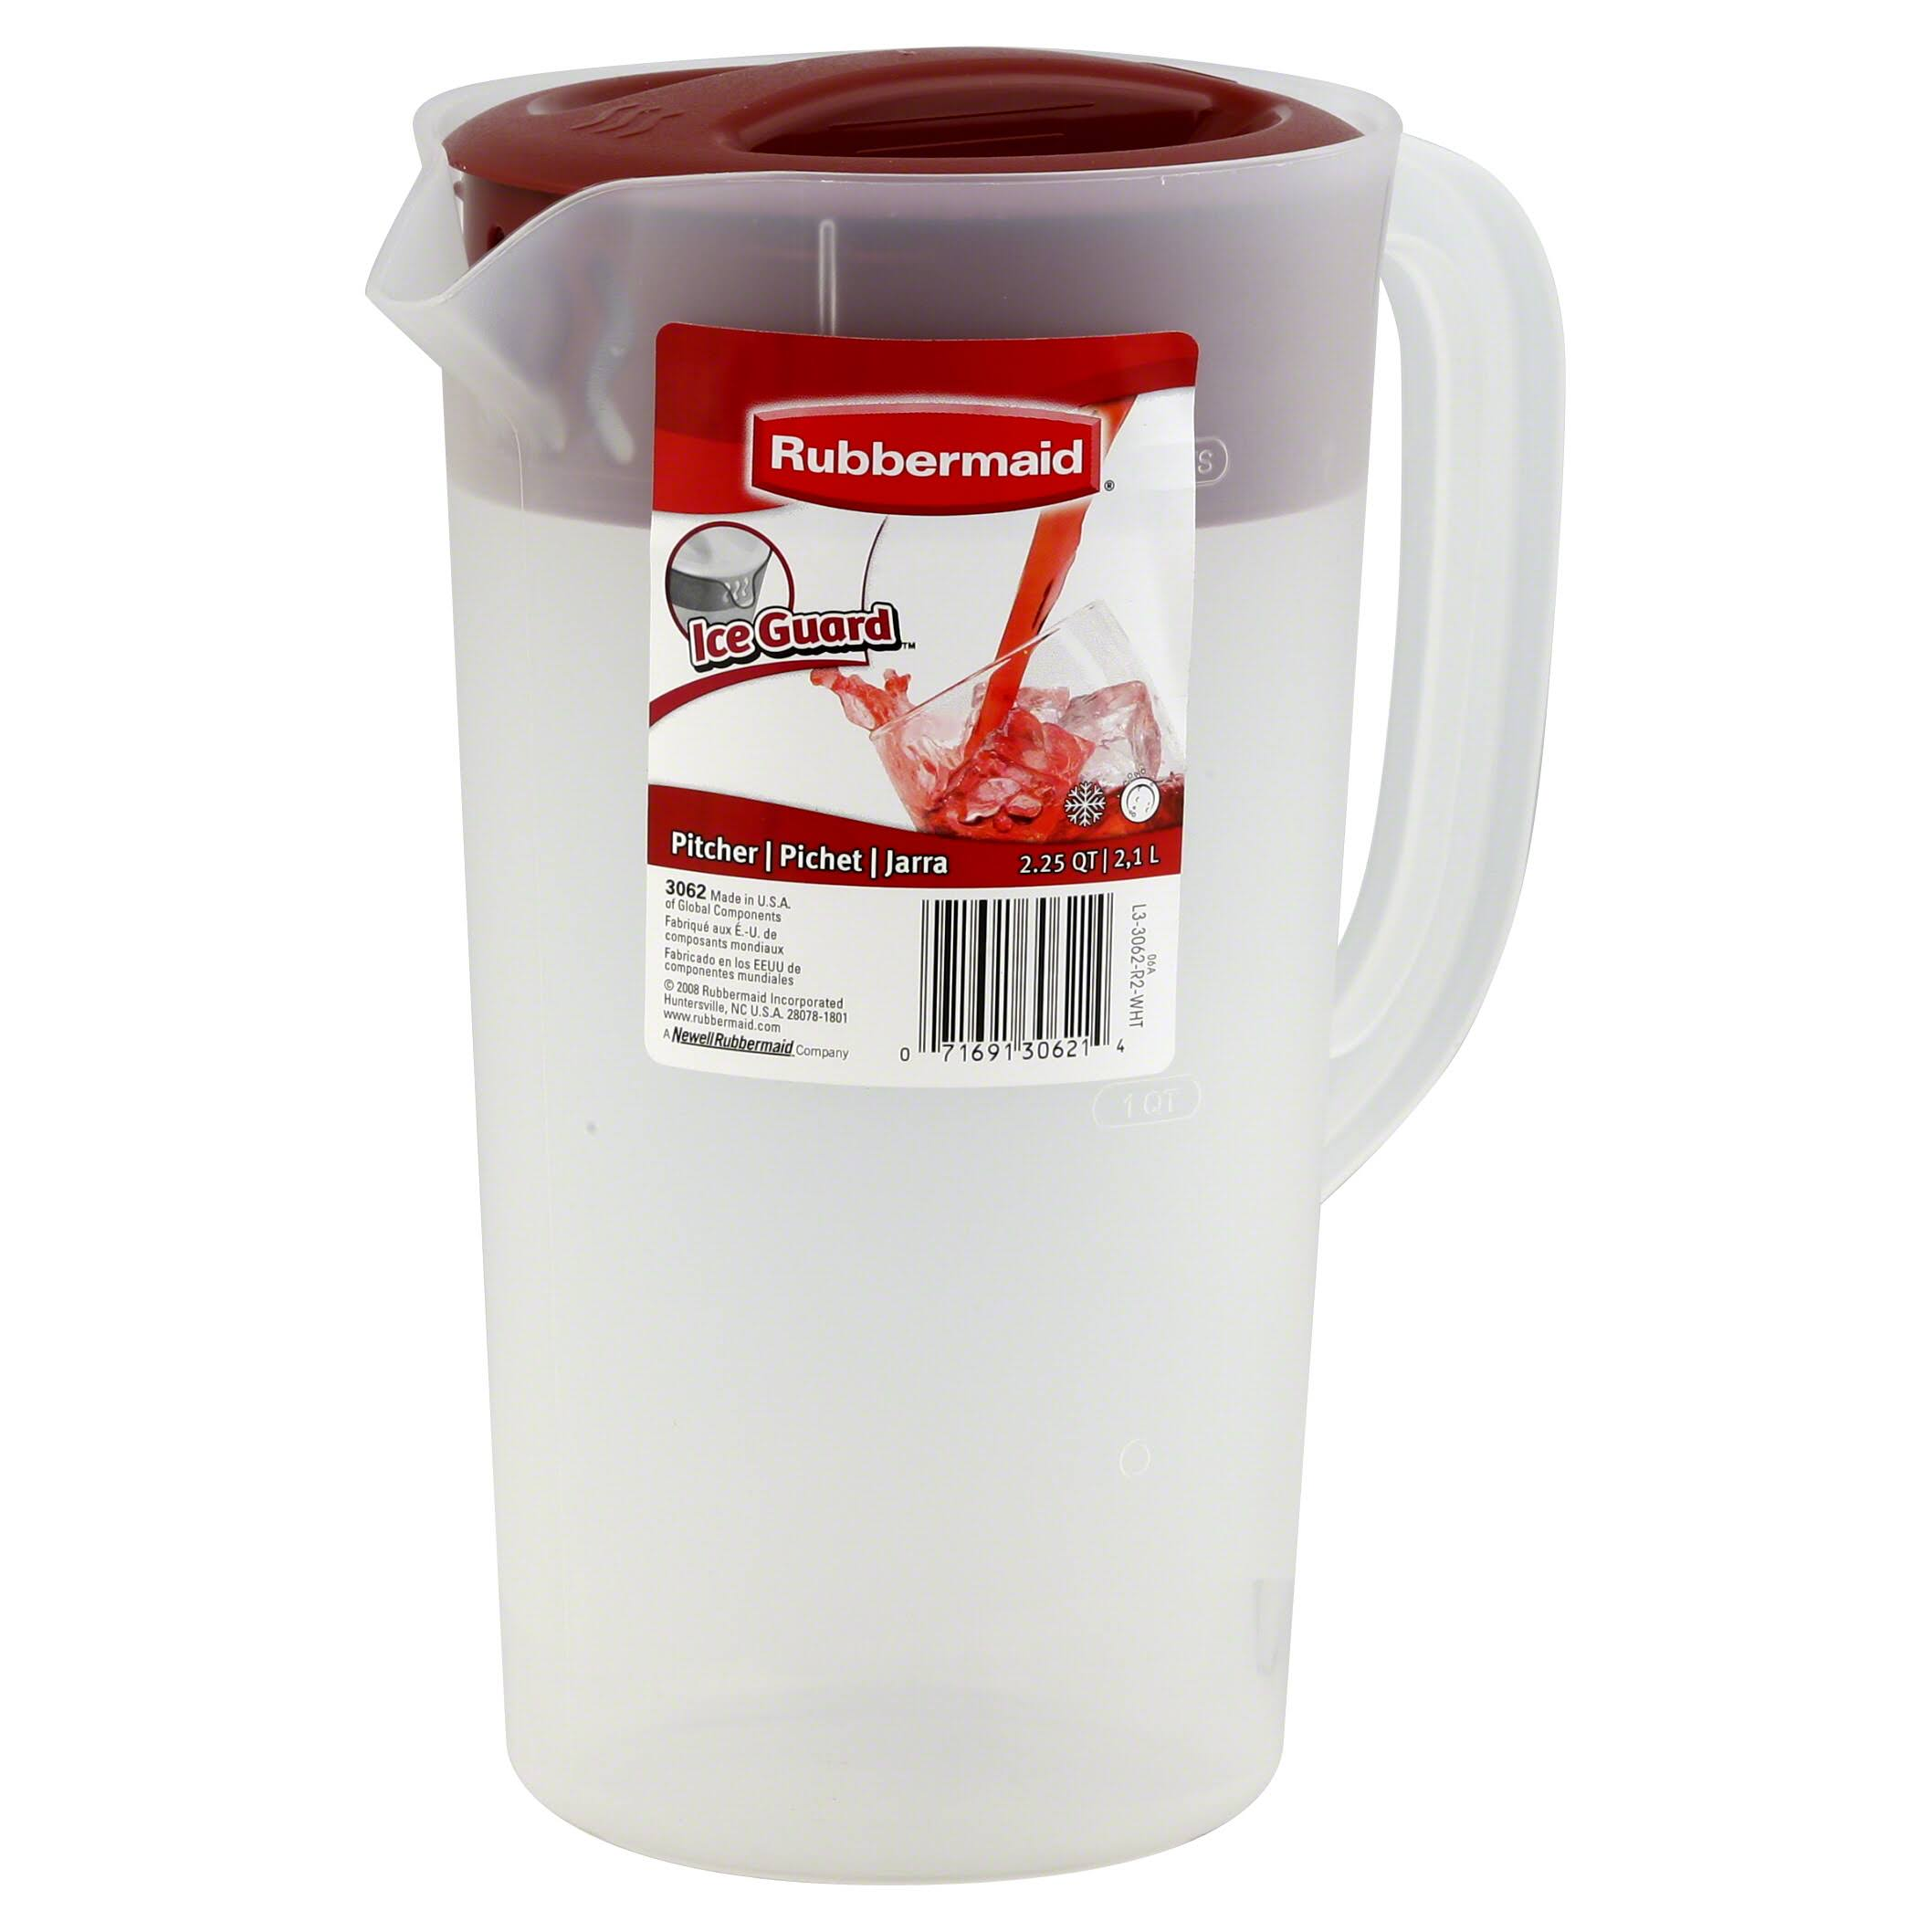 Rubbermaid Covered Pitcher - 2.1l